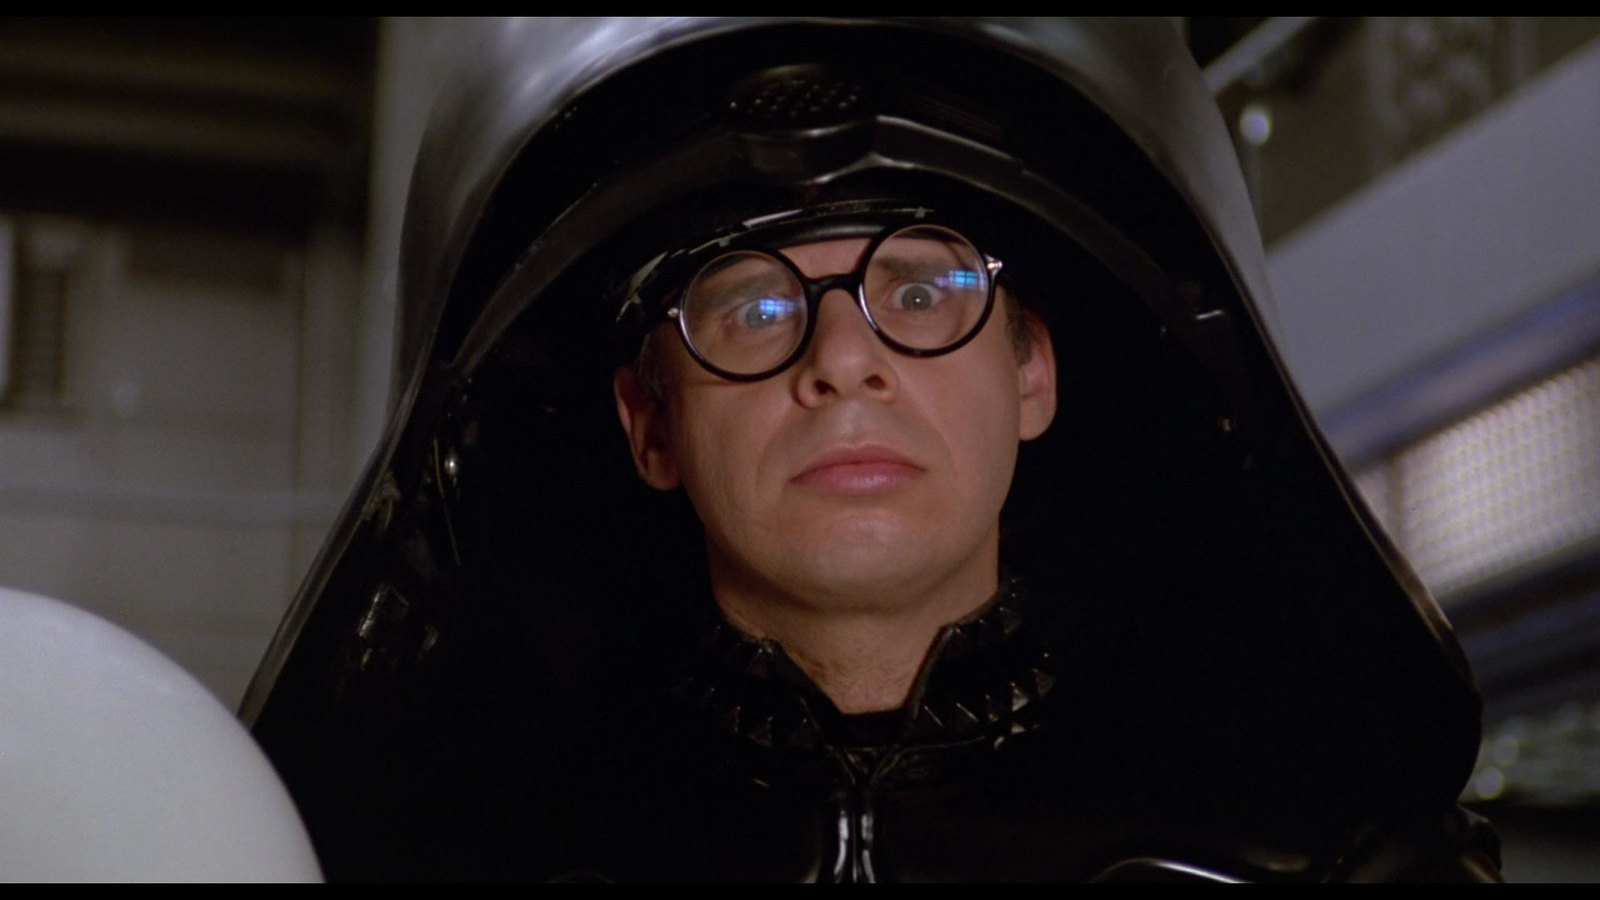 1980s Villains - Rick Moranis as Dark Helmet from Spaceballs (1987)